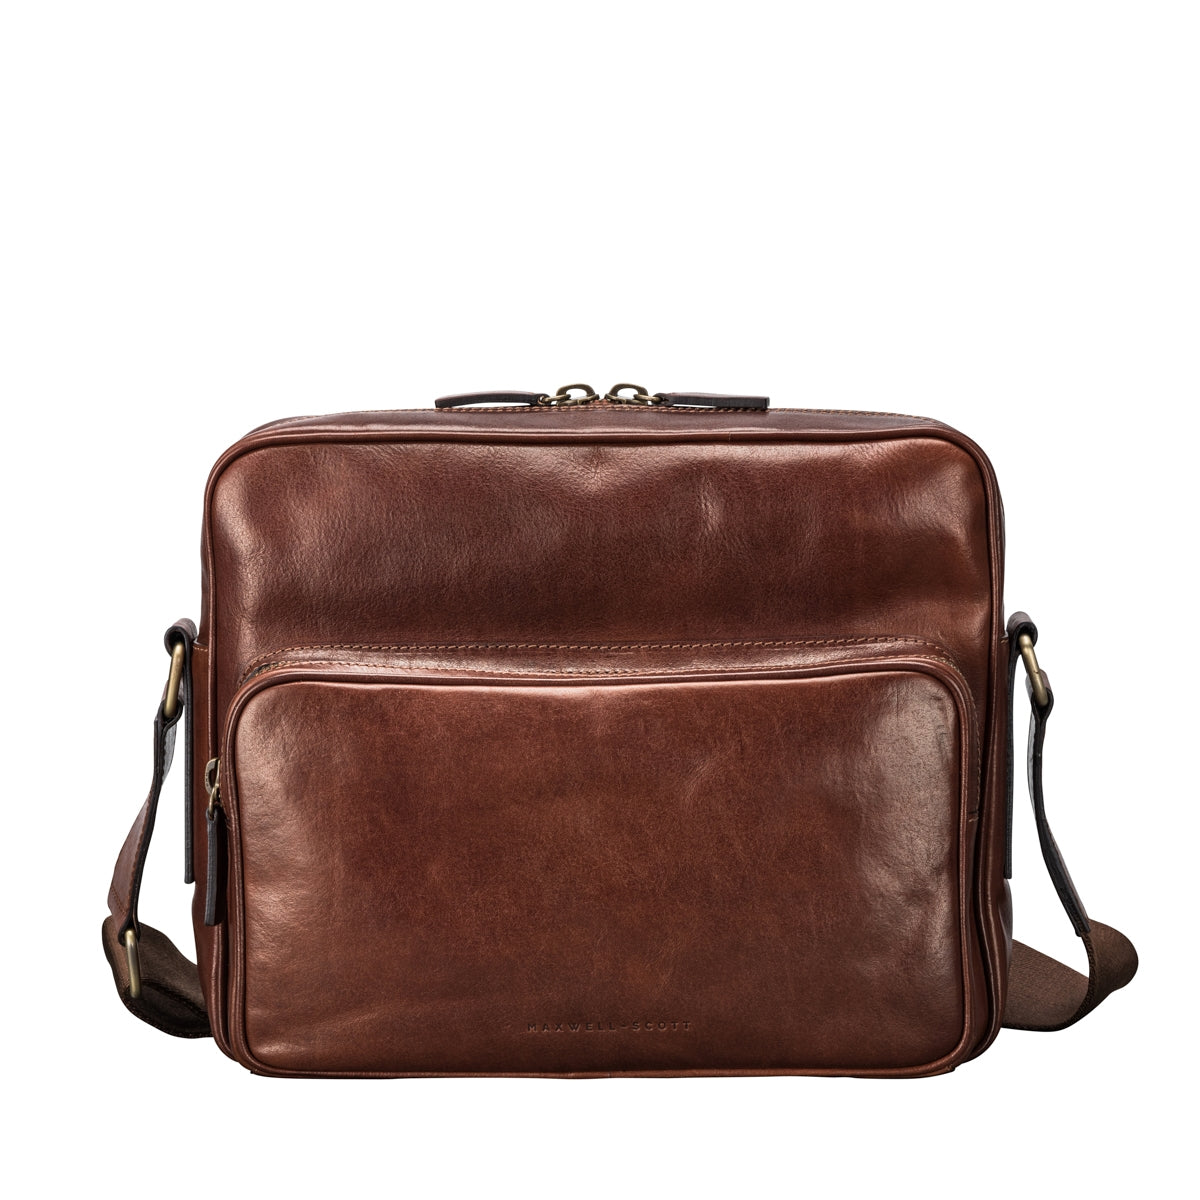 Image 1 of the Santino' Chestnut Handmade Veg-Tanned Leather Messenger Bag With Lock